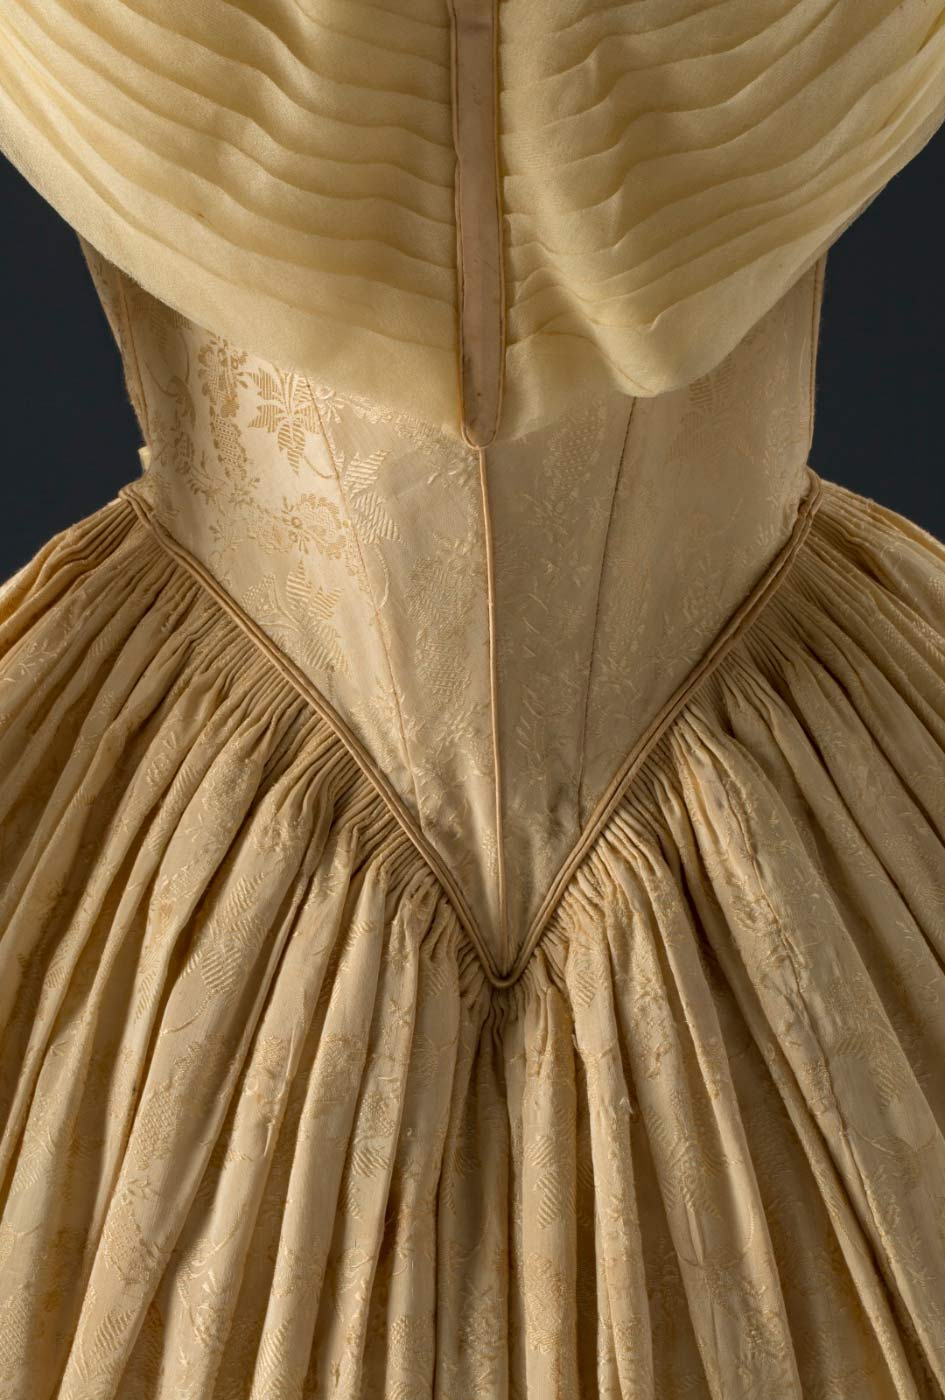 Cropped image of a silk dress with an intricate pattern and detail. - click to view larger image